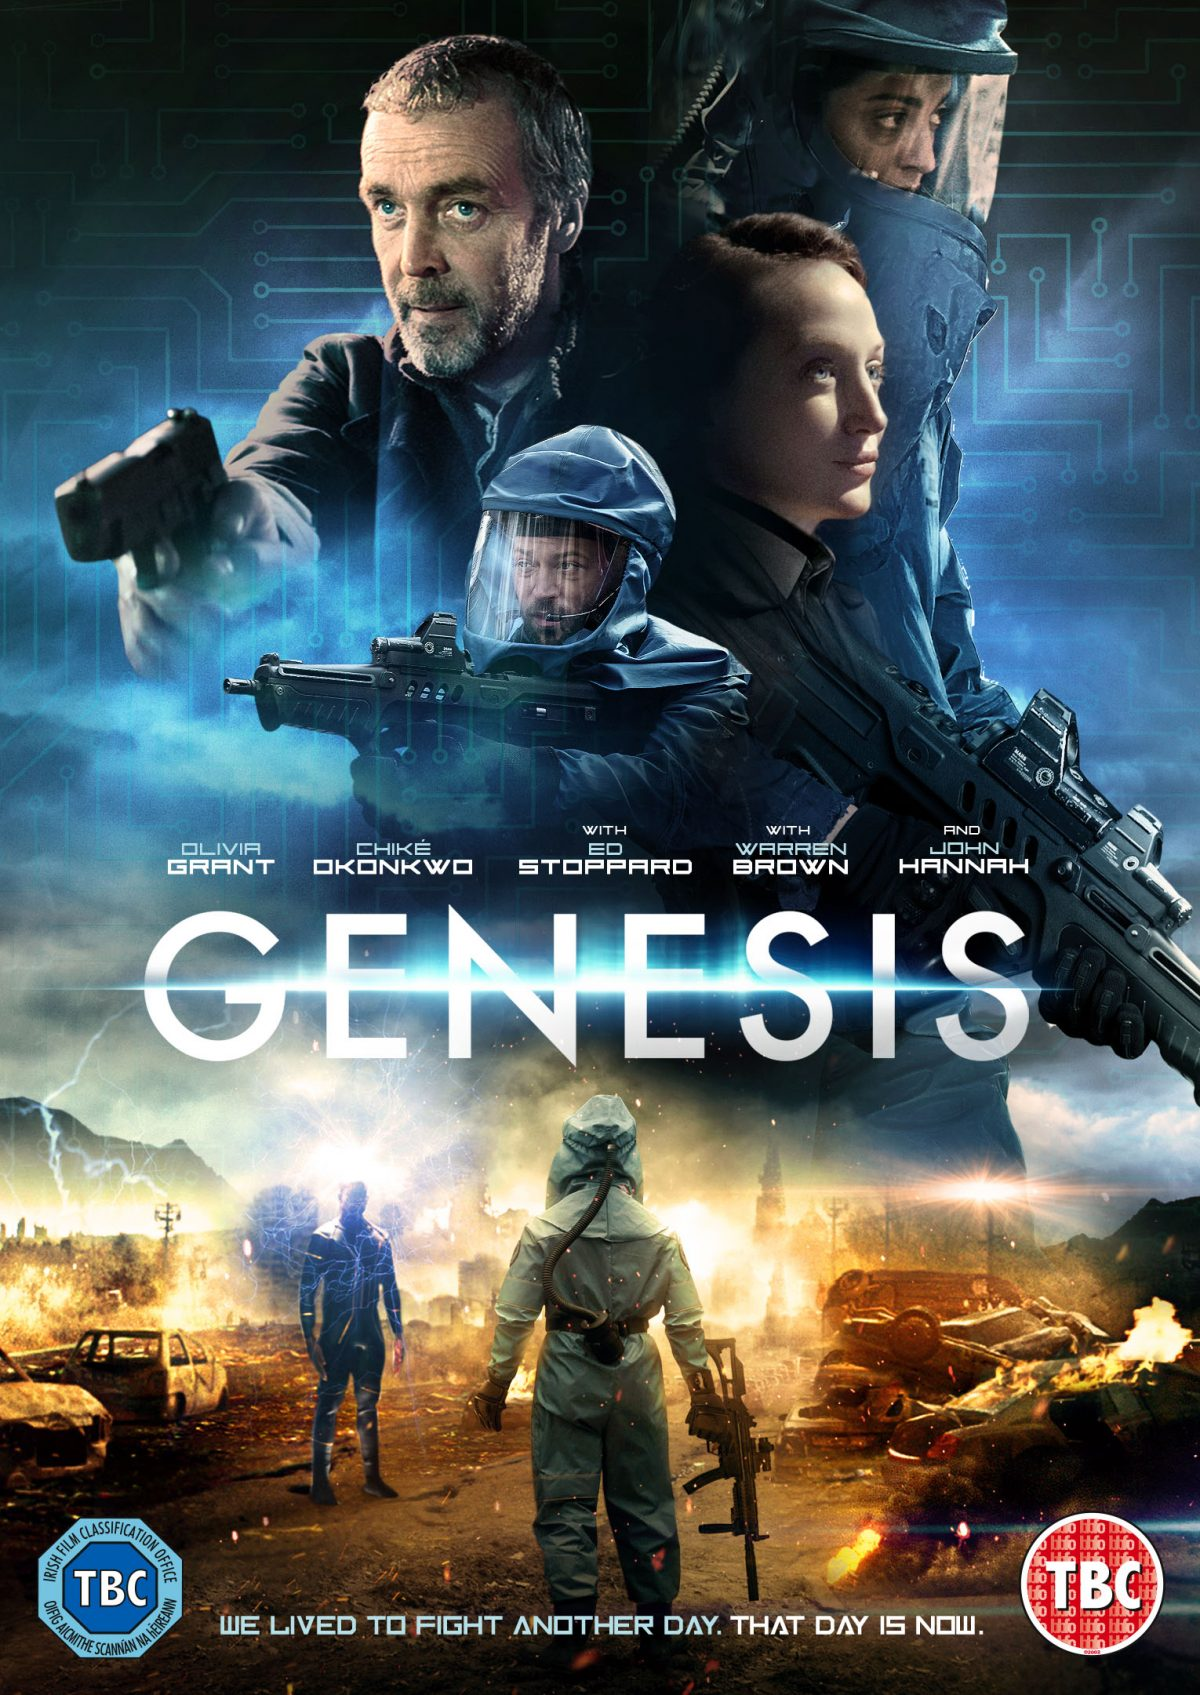 Are you ready for a chance to win a DVD of the stellar British sci-fi adventure Genesis, as Man battles Machine in a desperate future?